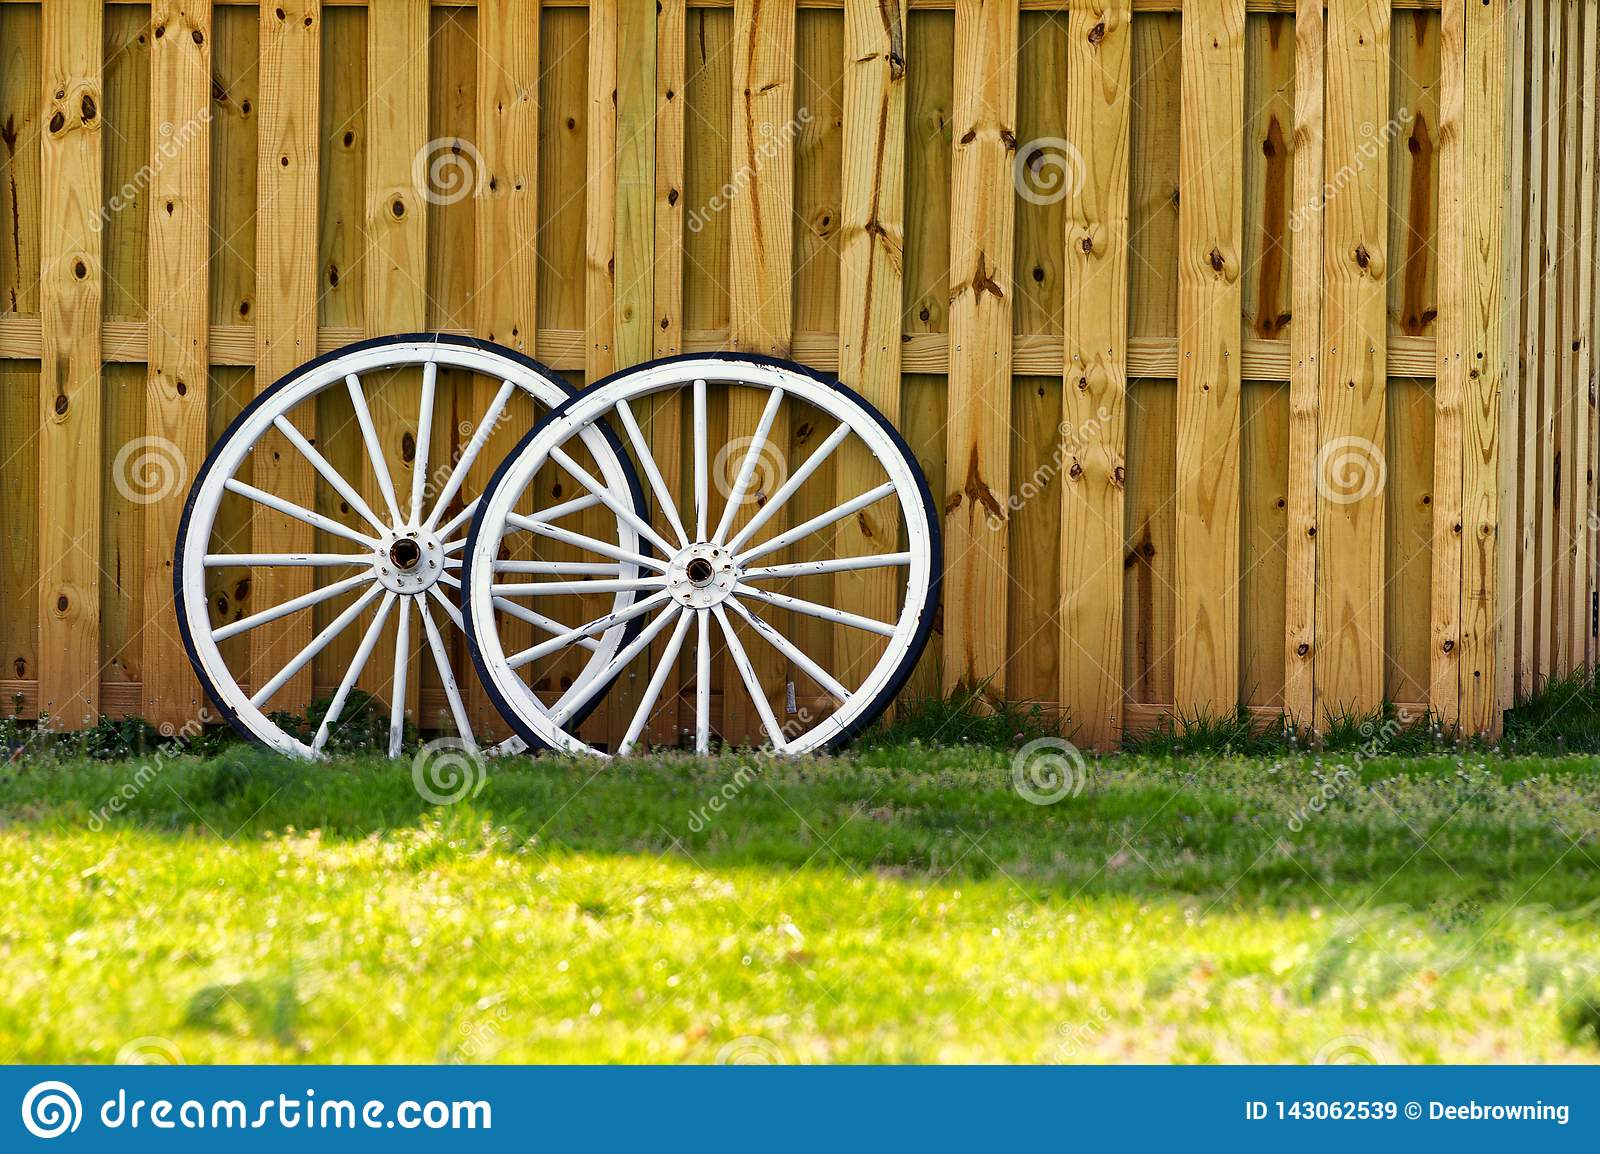 Two White Wagon Wheels Against A Wooden Fence Stock Image Image Of Copy Leaning 143062539